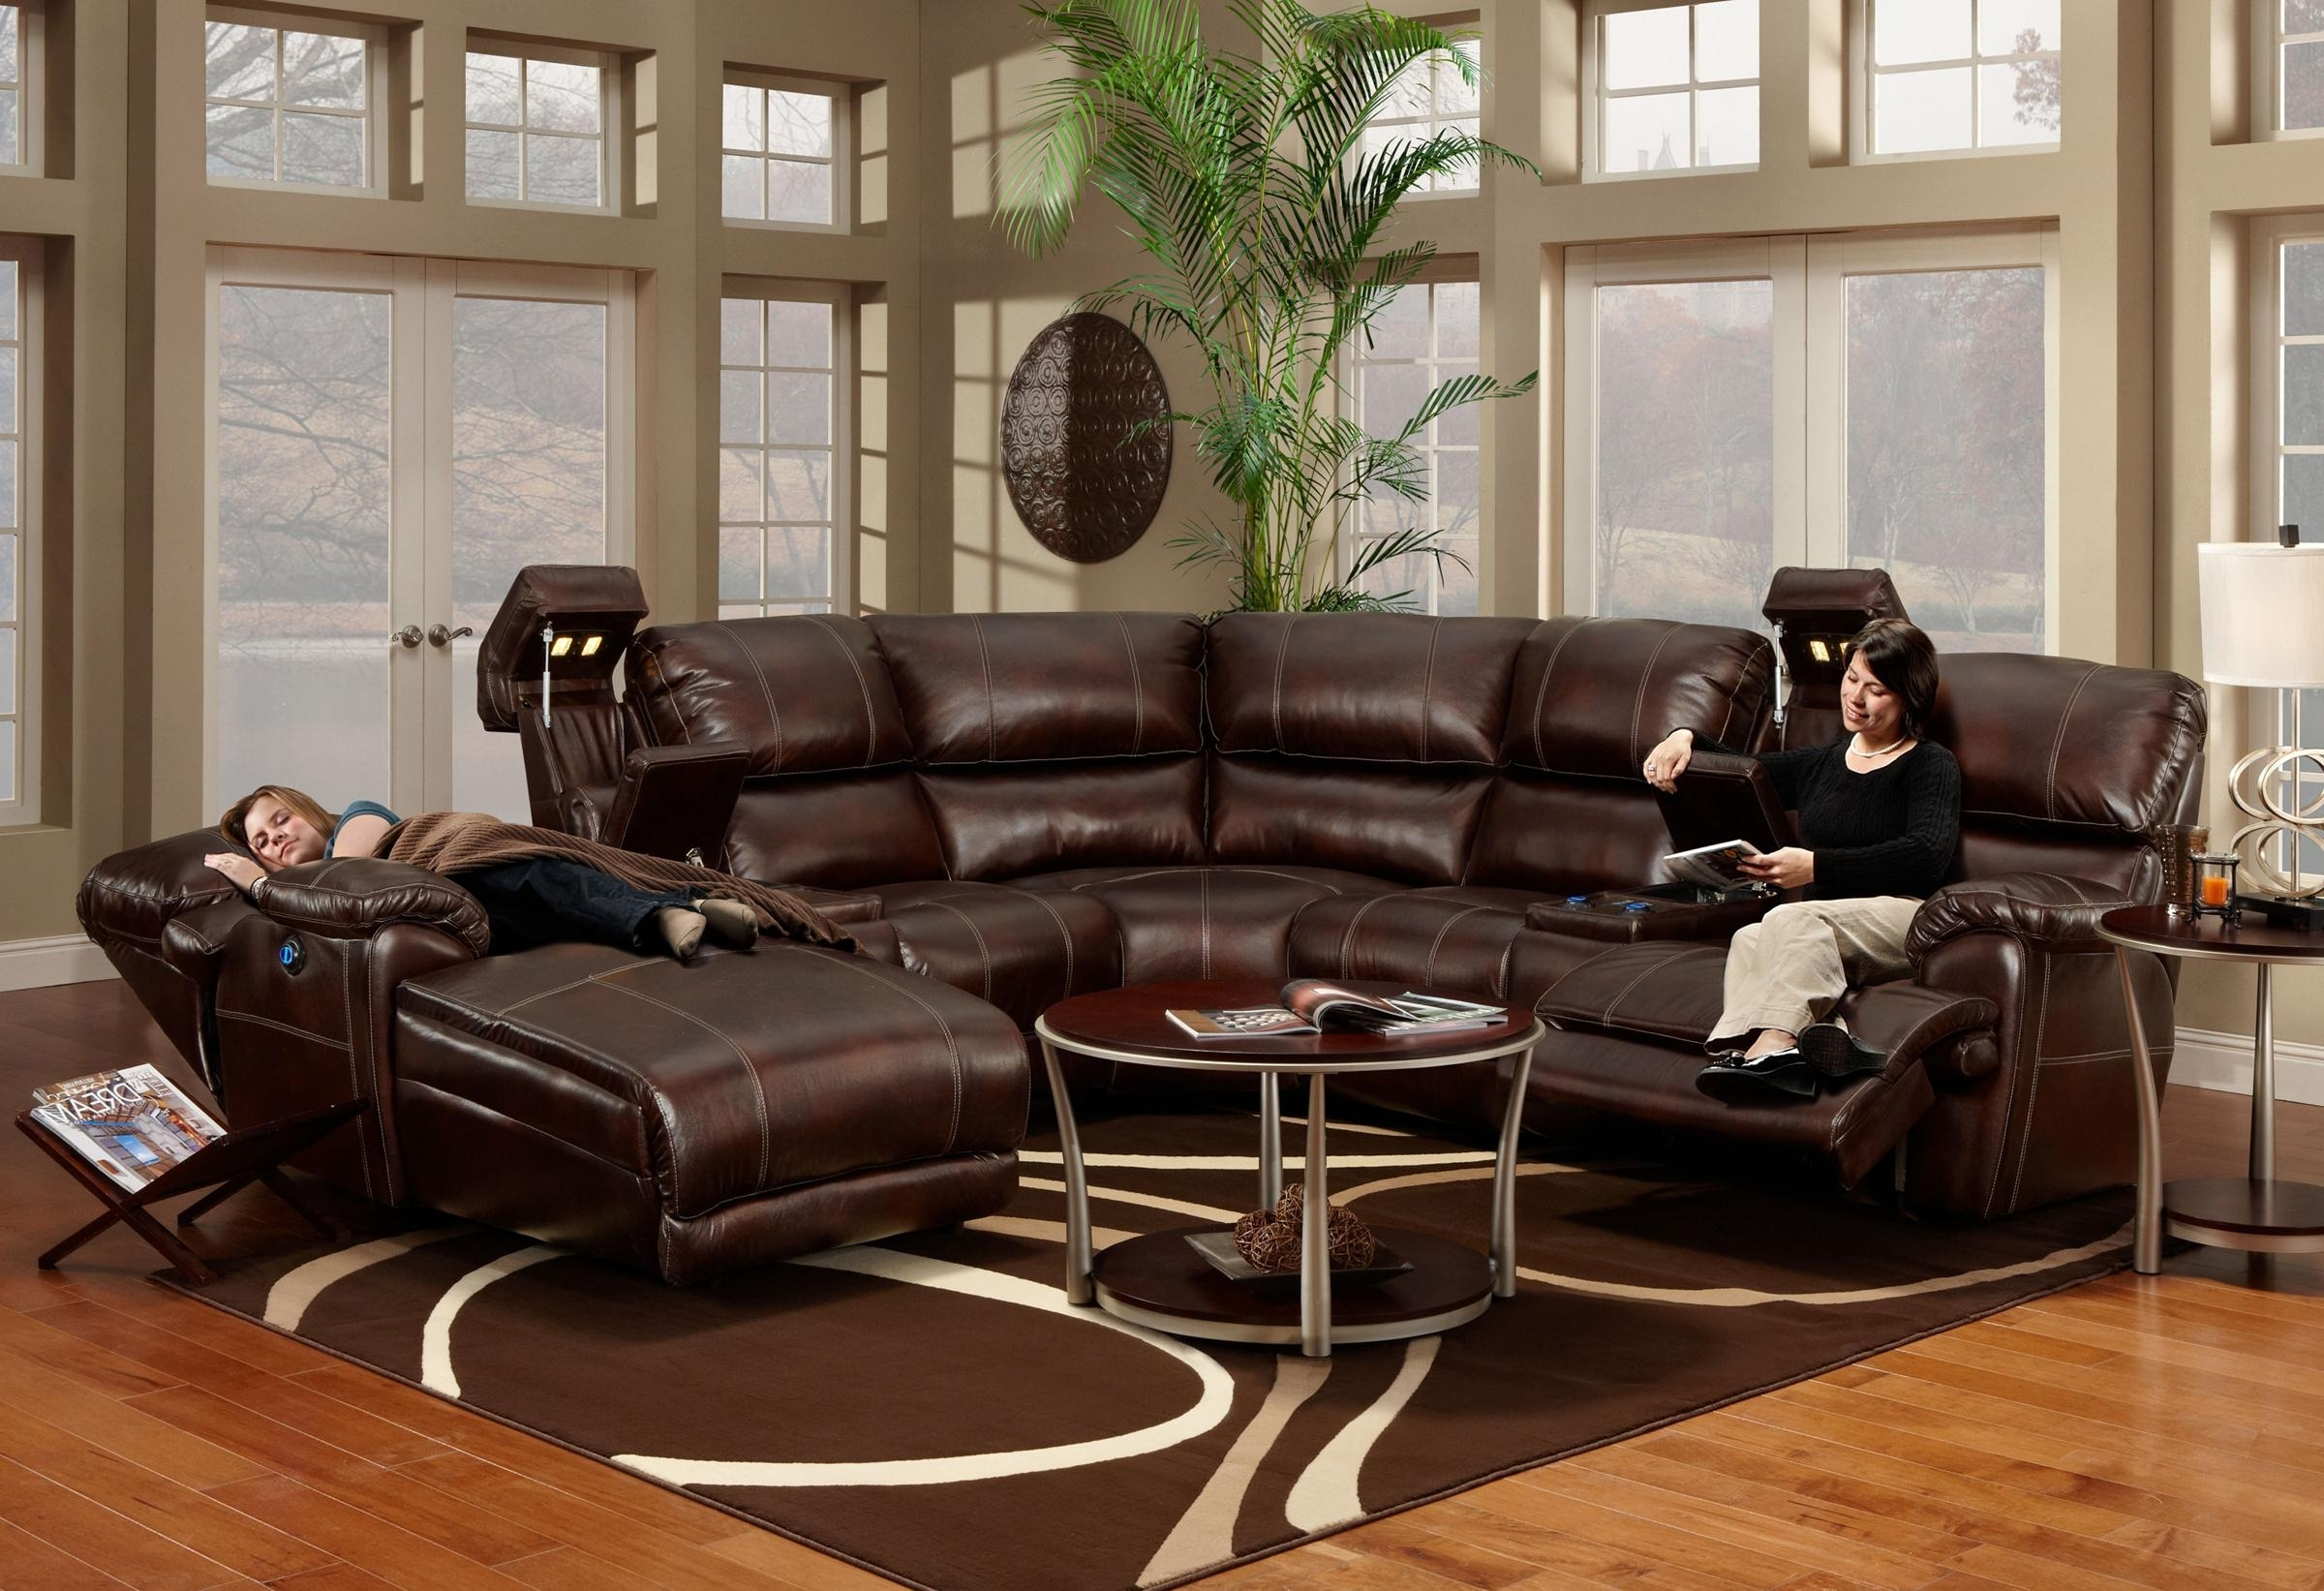 Kansas City Sectional Sofas throughout Widely used Franklin 572 Reclining Sectional Sofa With Chaise - Ahfa - Sofa